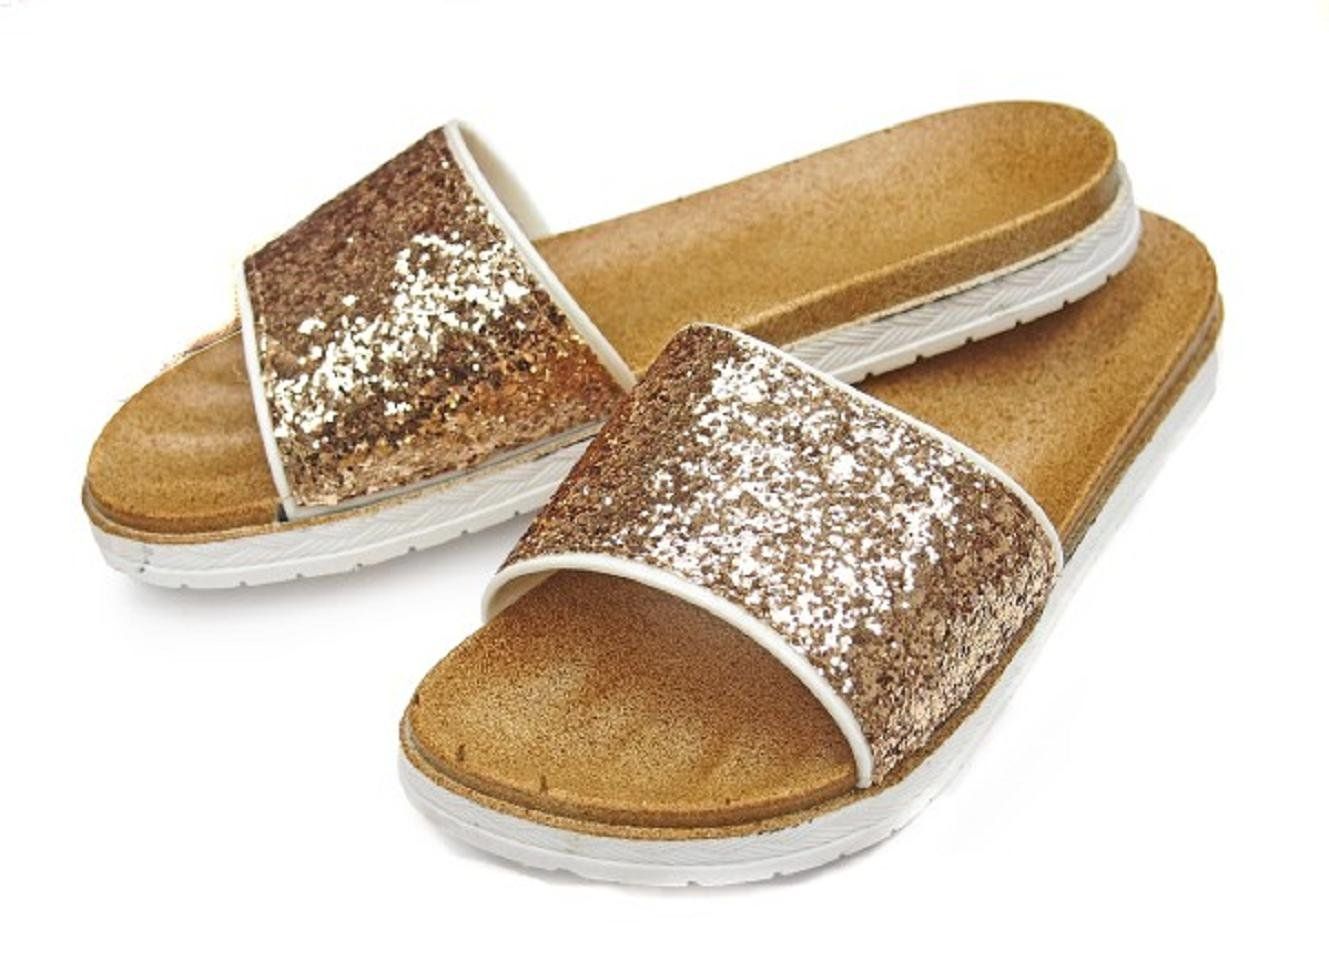 DINY Home & Style Ladies Women's Glitter Faux Leather Slide Sandals (11, Gold)